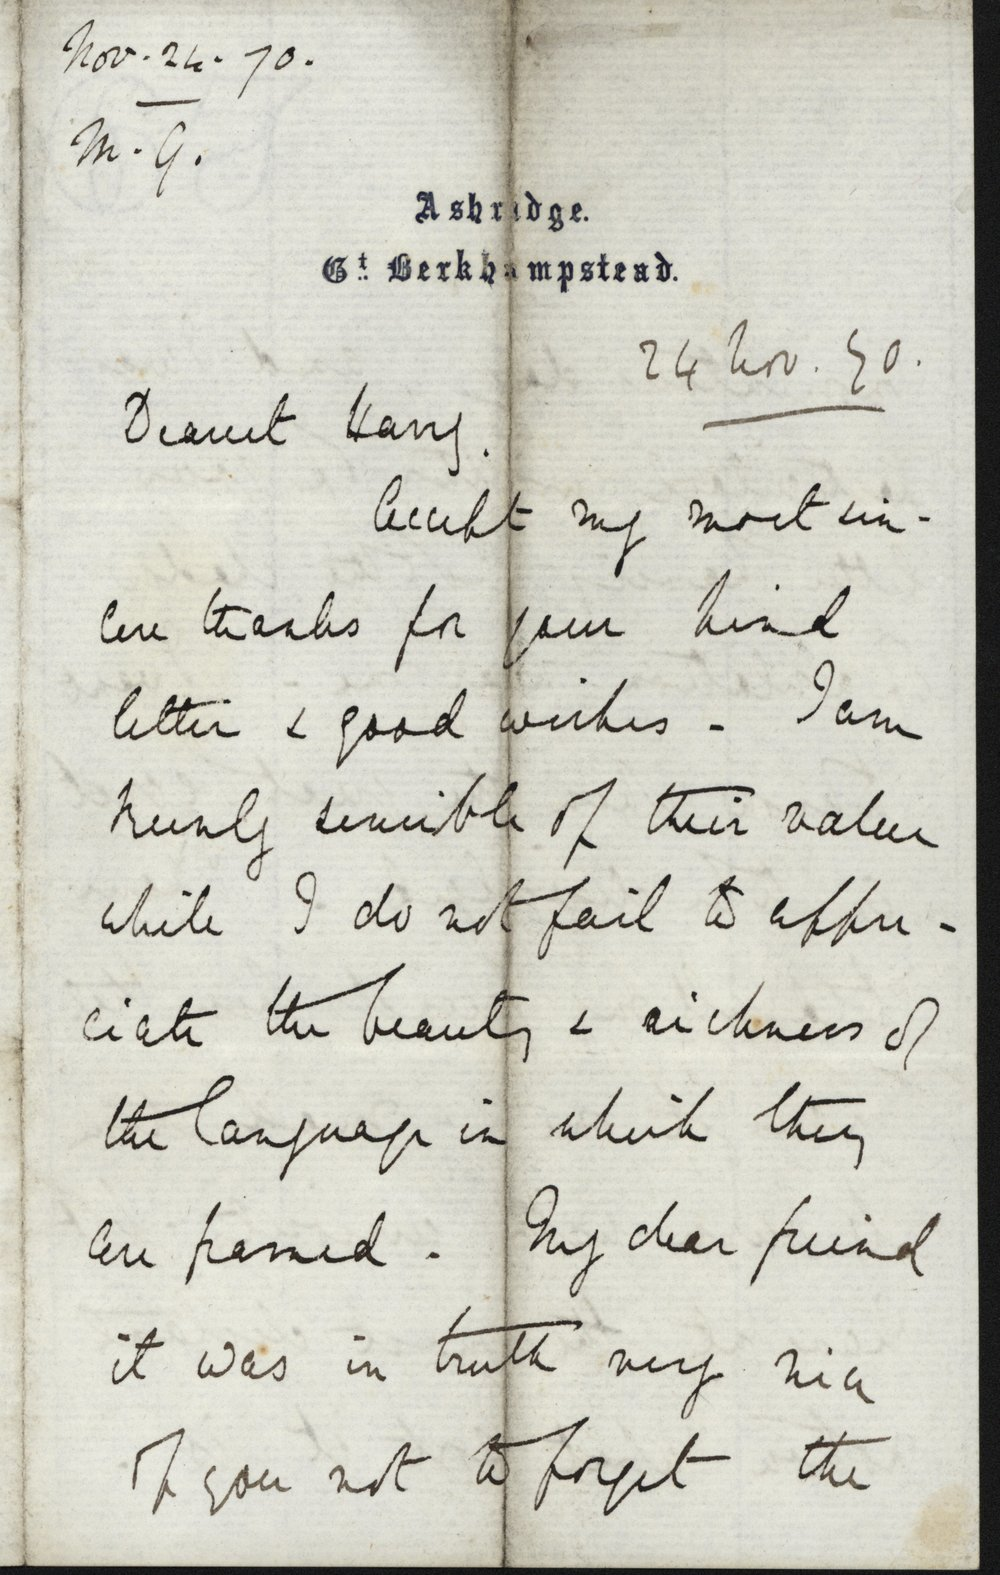 Mary Gladstone to Henry Neville Gladstone, 24 November 1870, GG 848. All images used with permission. See the end of the post for the transcription.